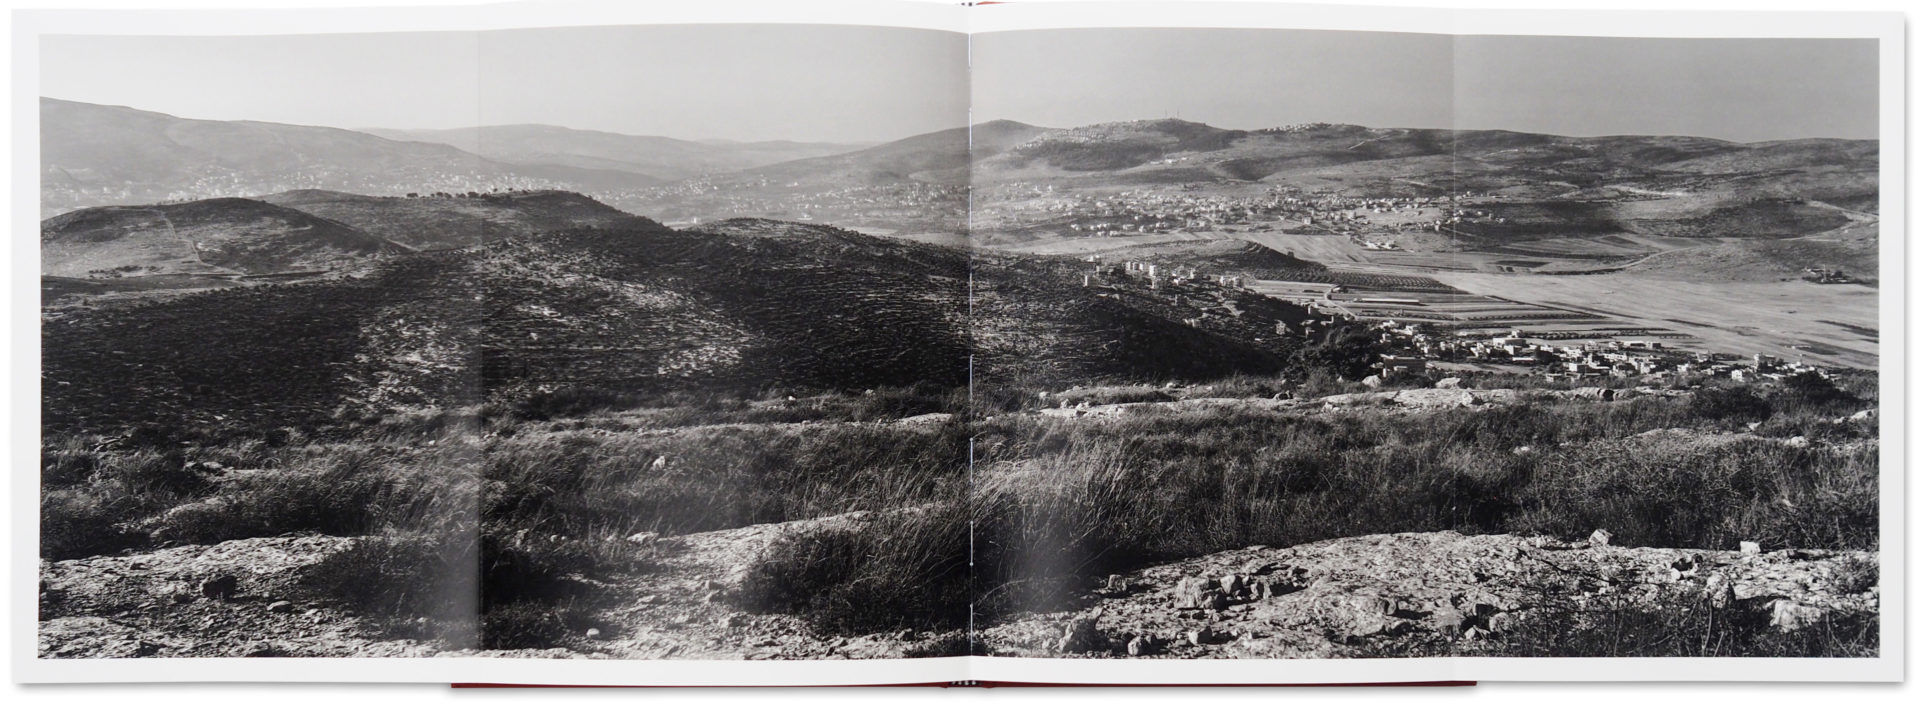 Settlements_home spread